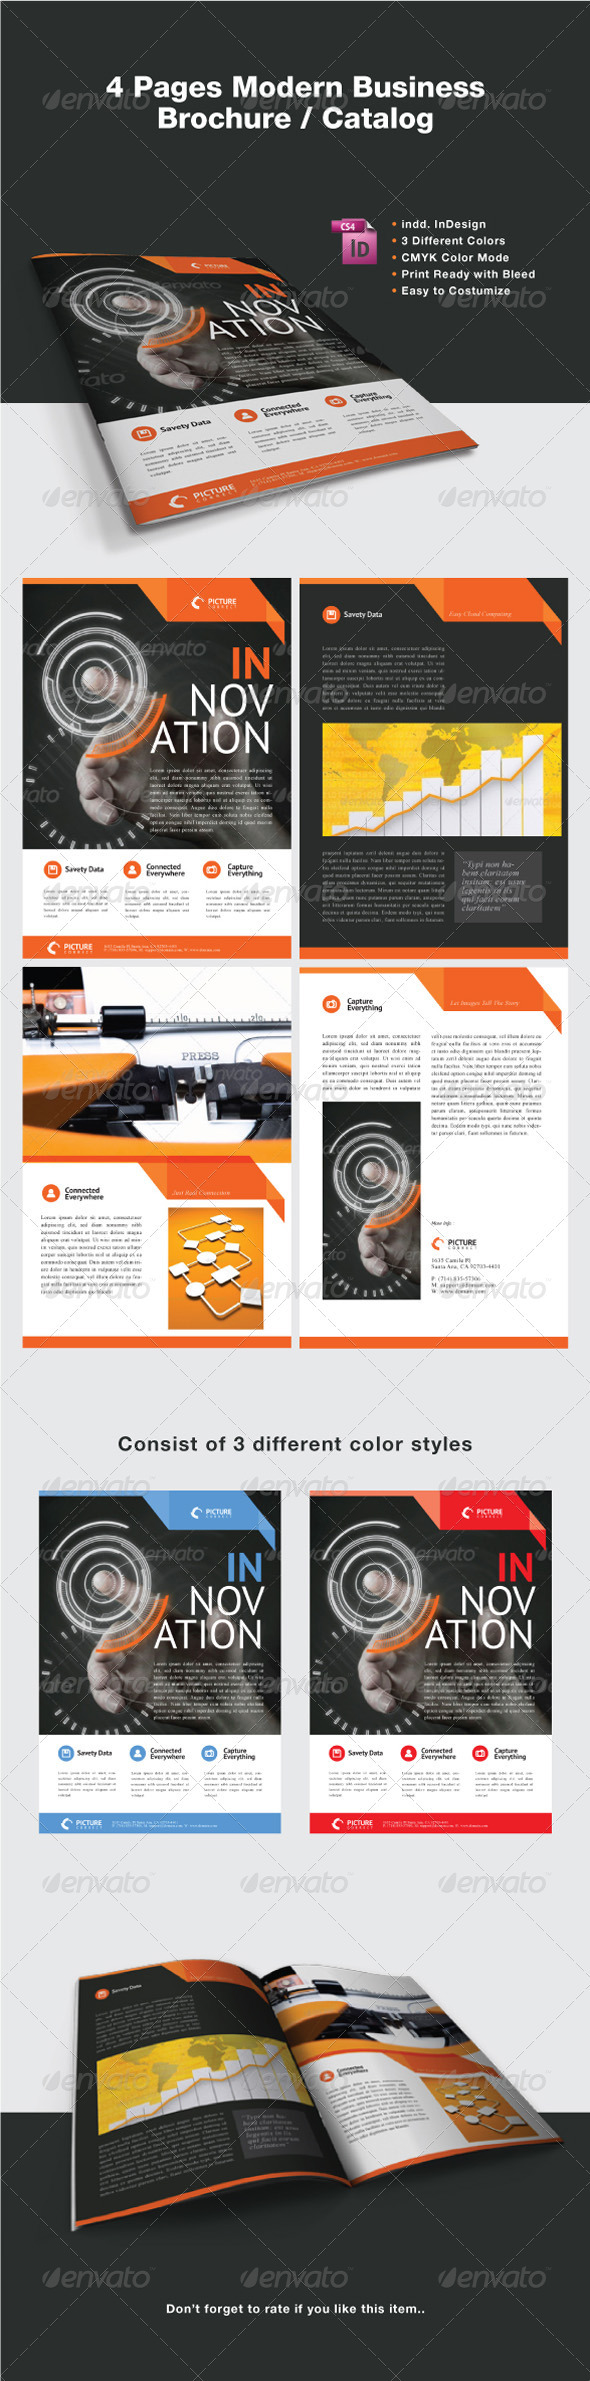 GraphicRiver Modern Business Brochure Catalog 2703211